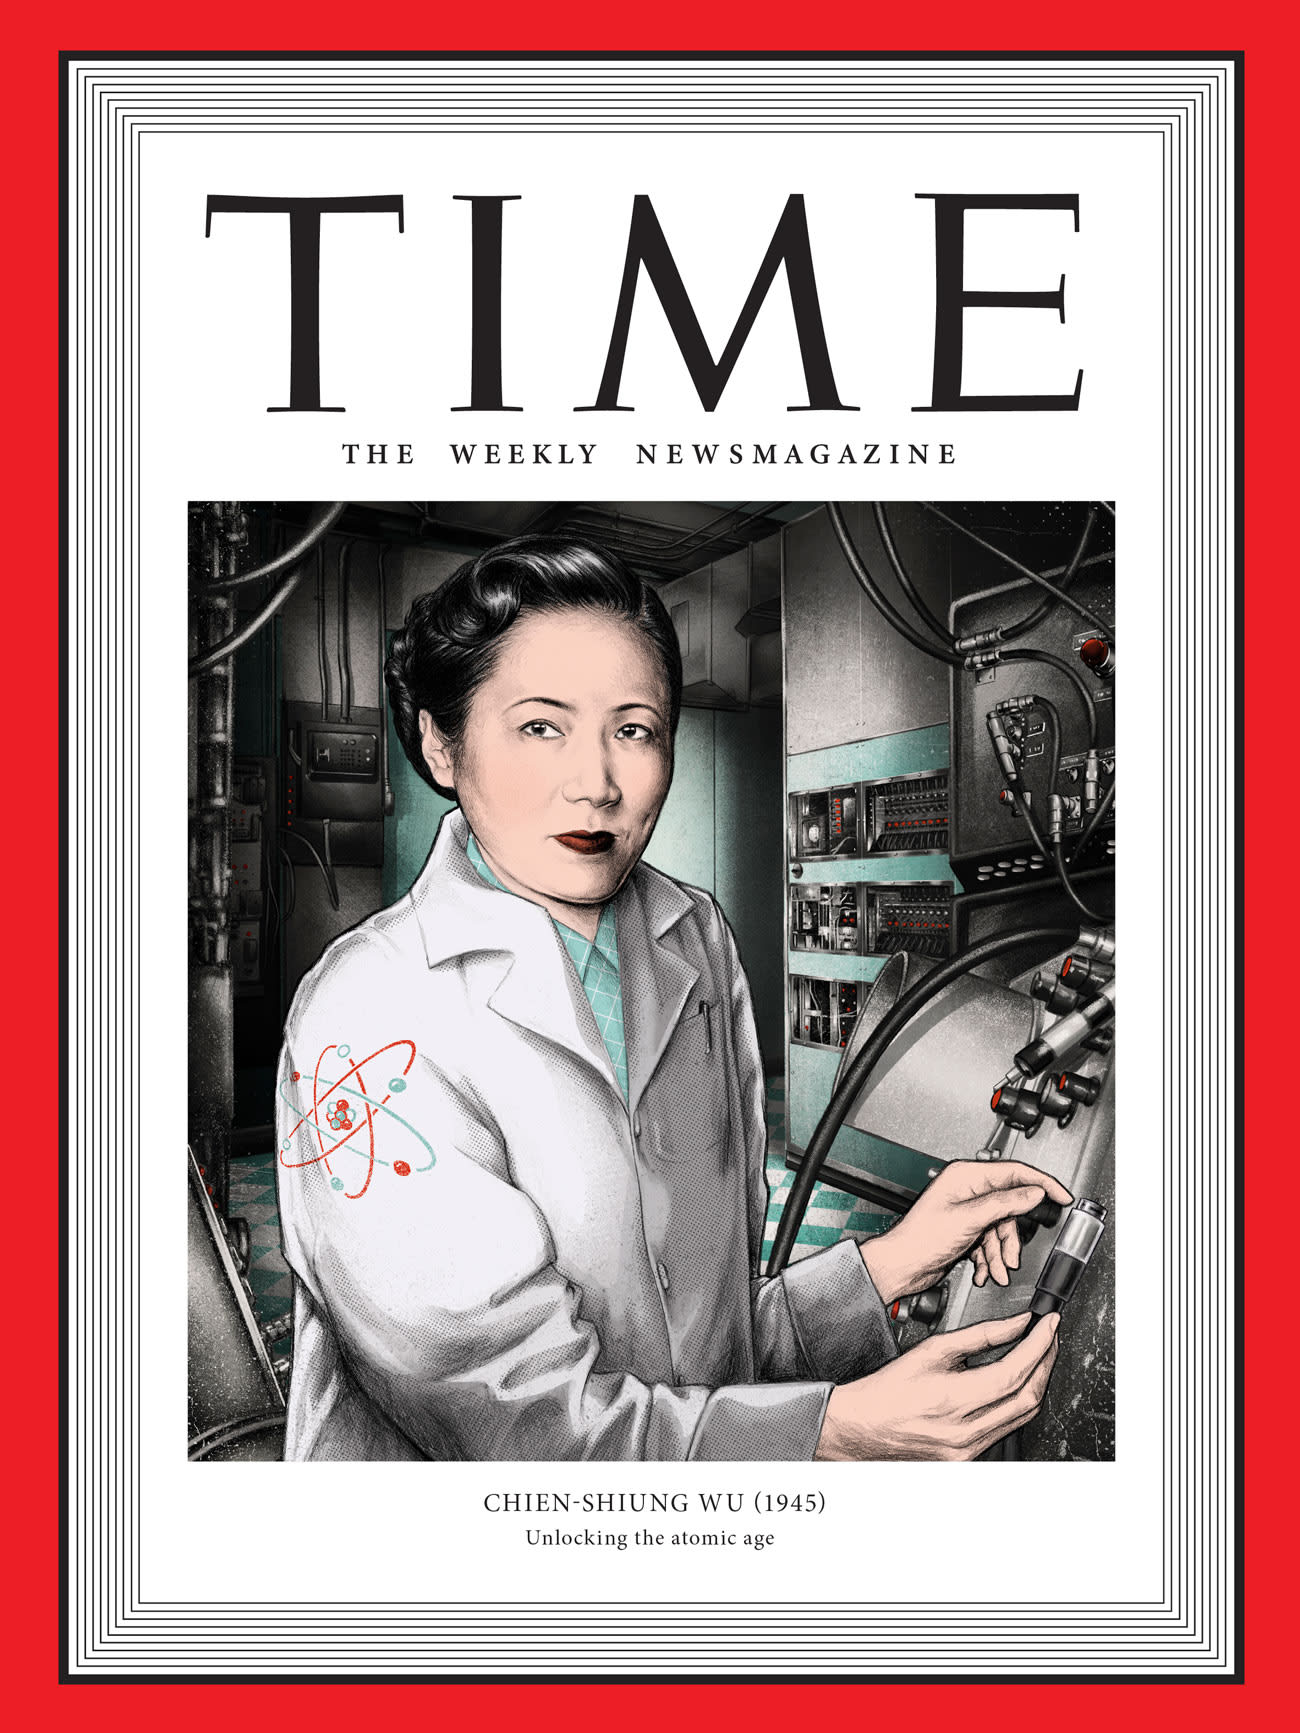 Chien-Shiung Wu Portrait Illustration for Time